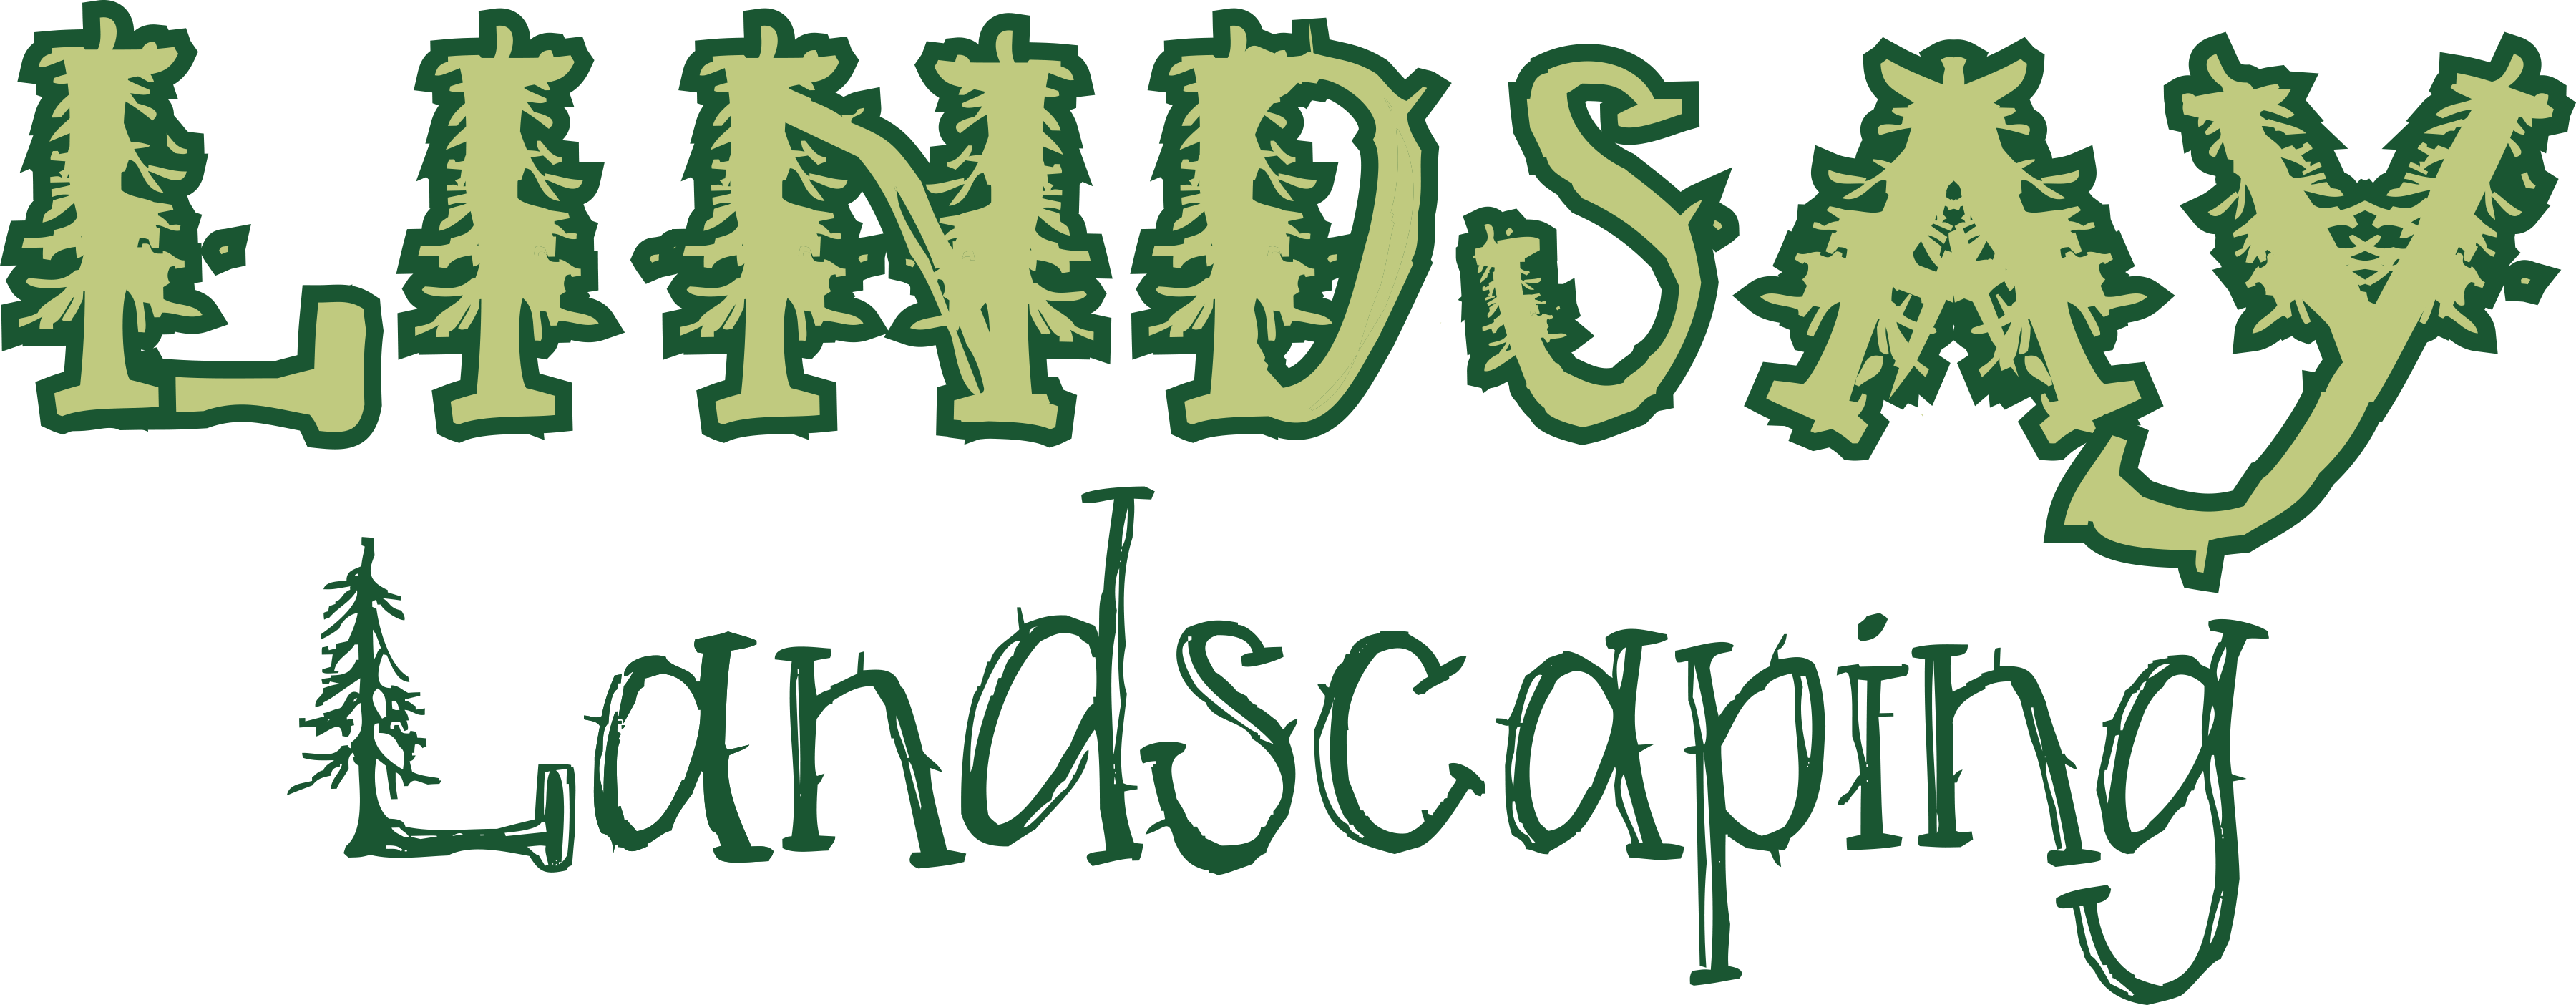 Lindsay Landscaping & Lawn Care